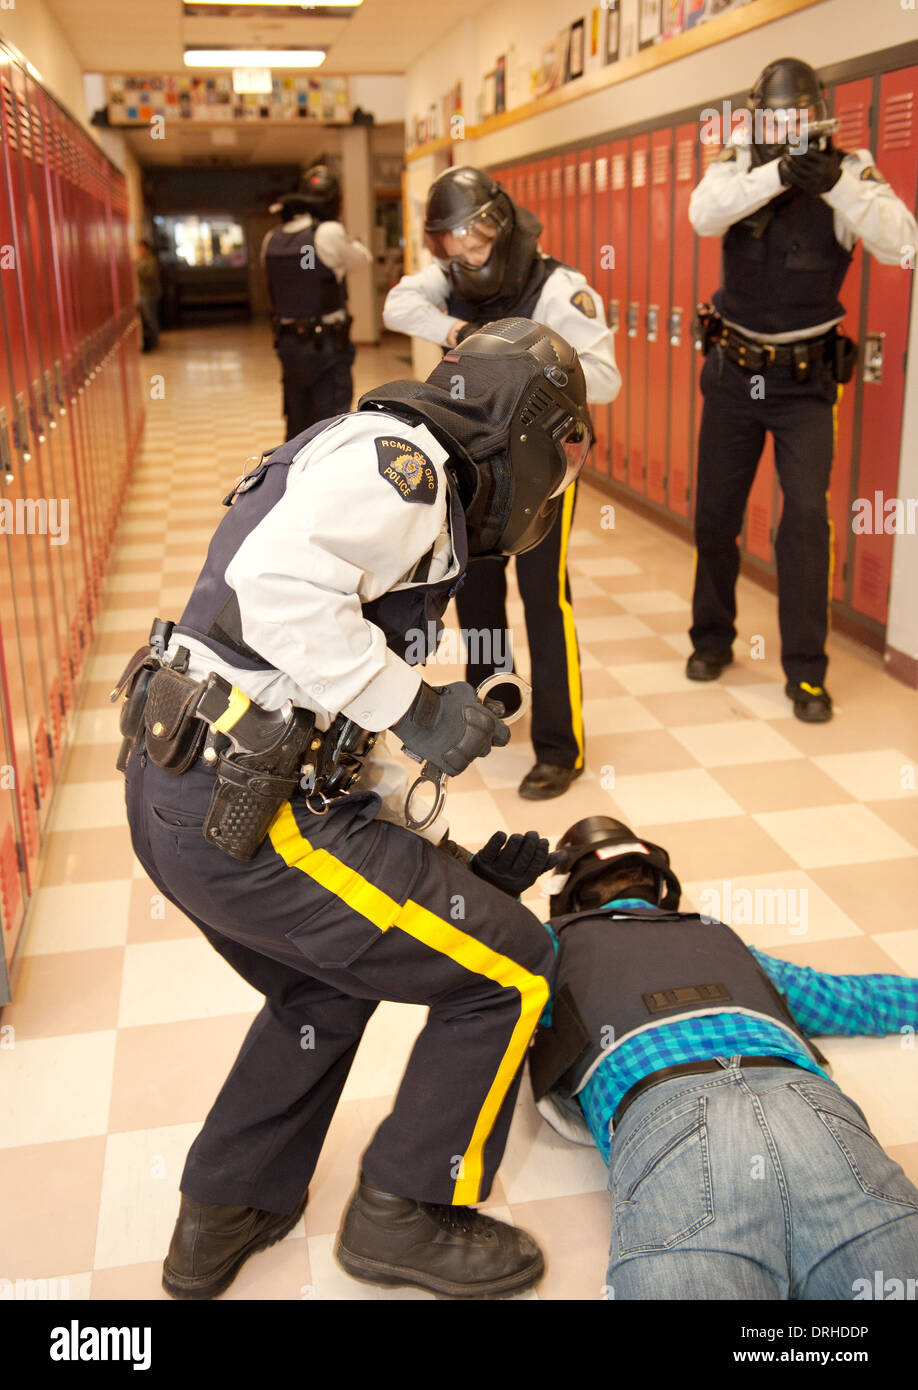 RCMP police officers take part in an active threat training exercise in SWAT, IRT and tactical response, at a high school. - Stock Image